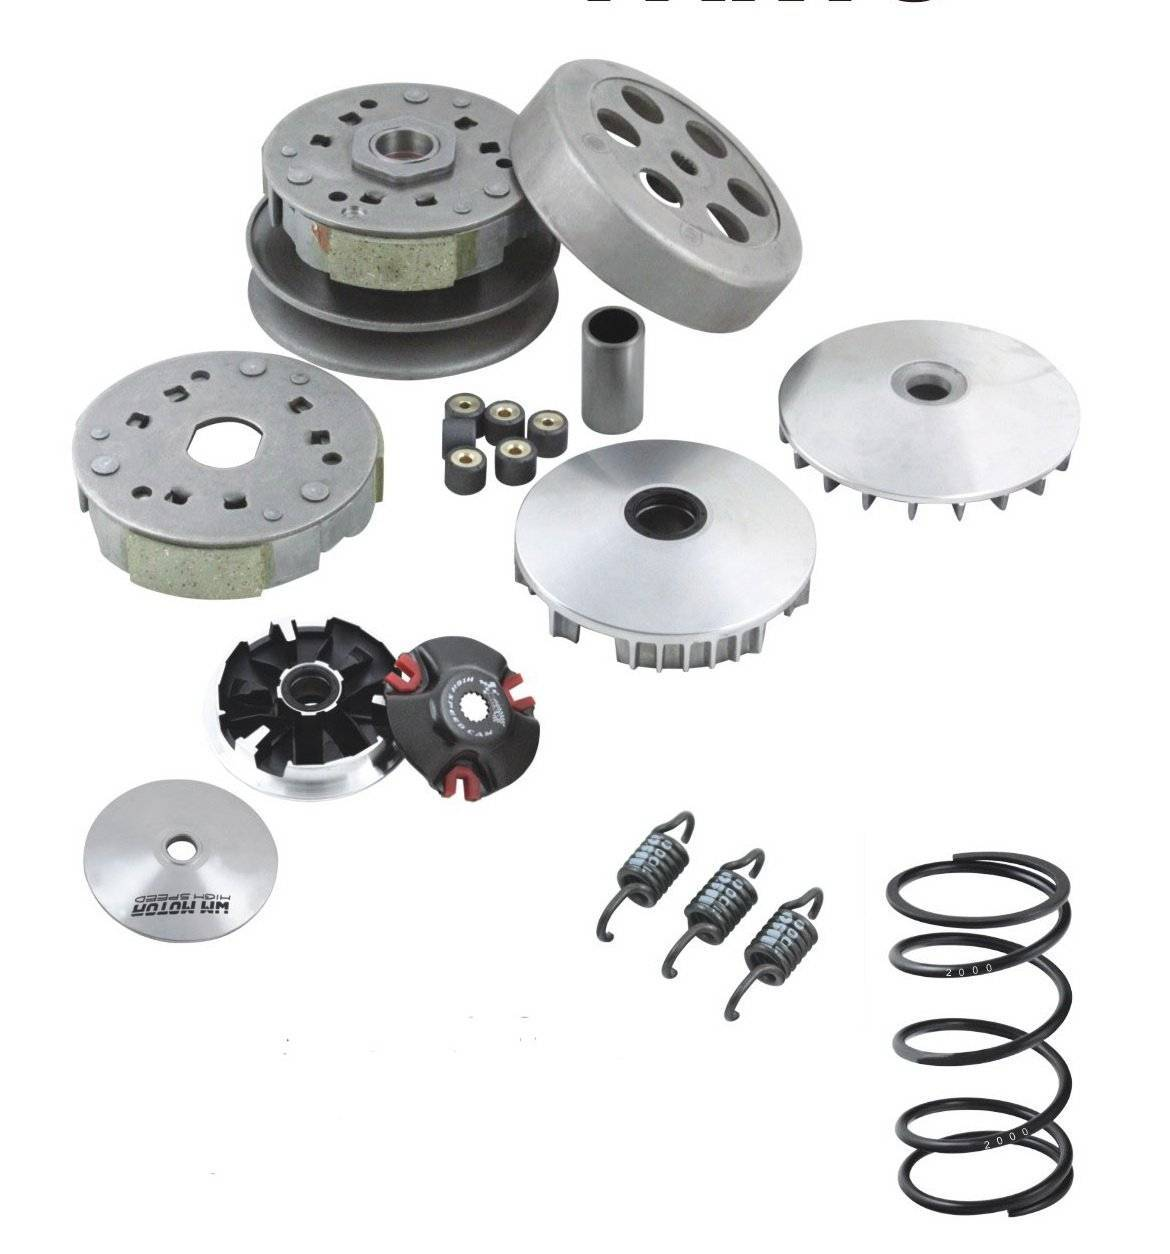 High quality motorcycle engine assembly